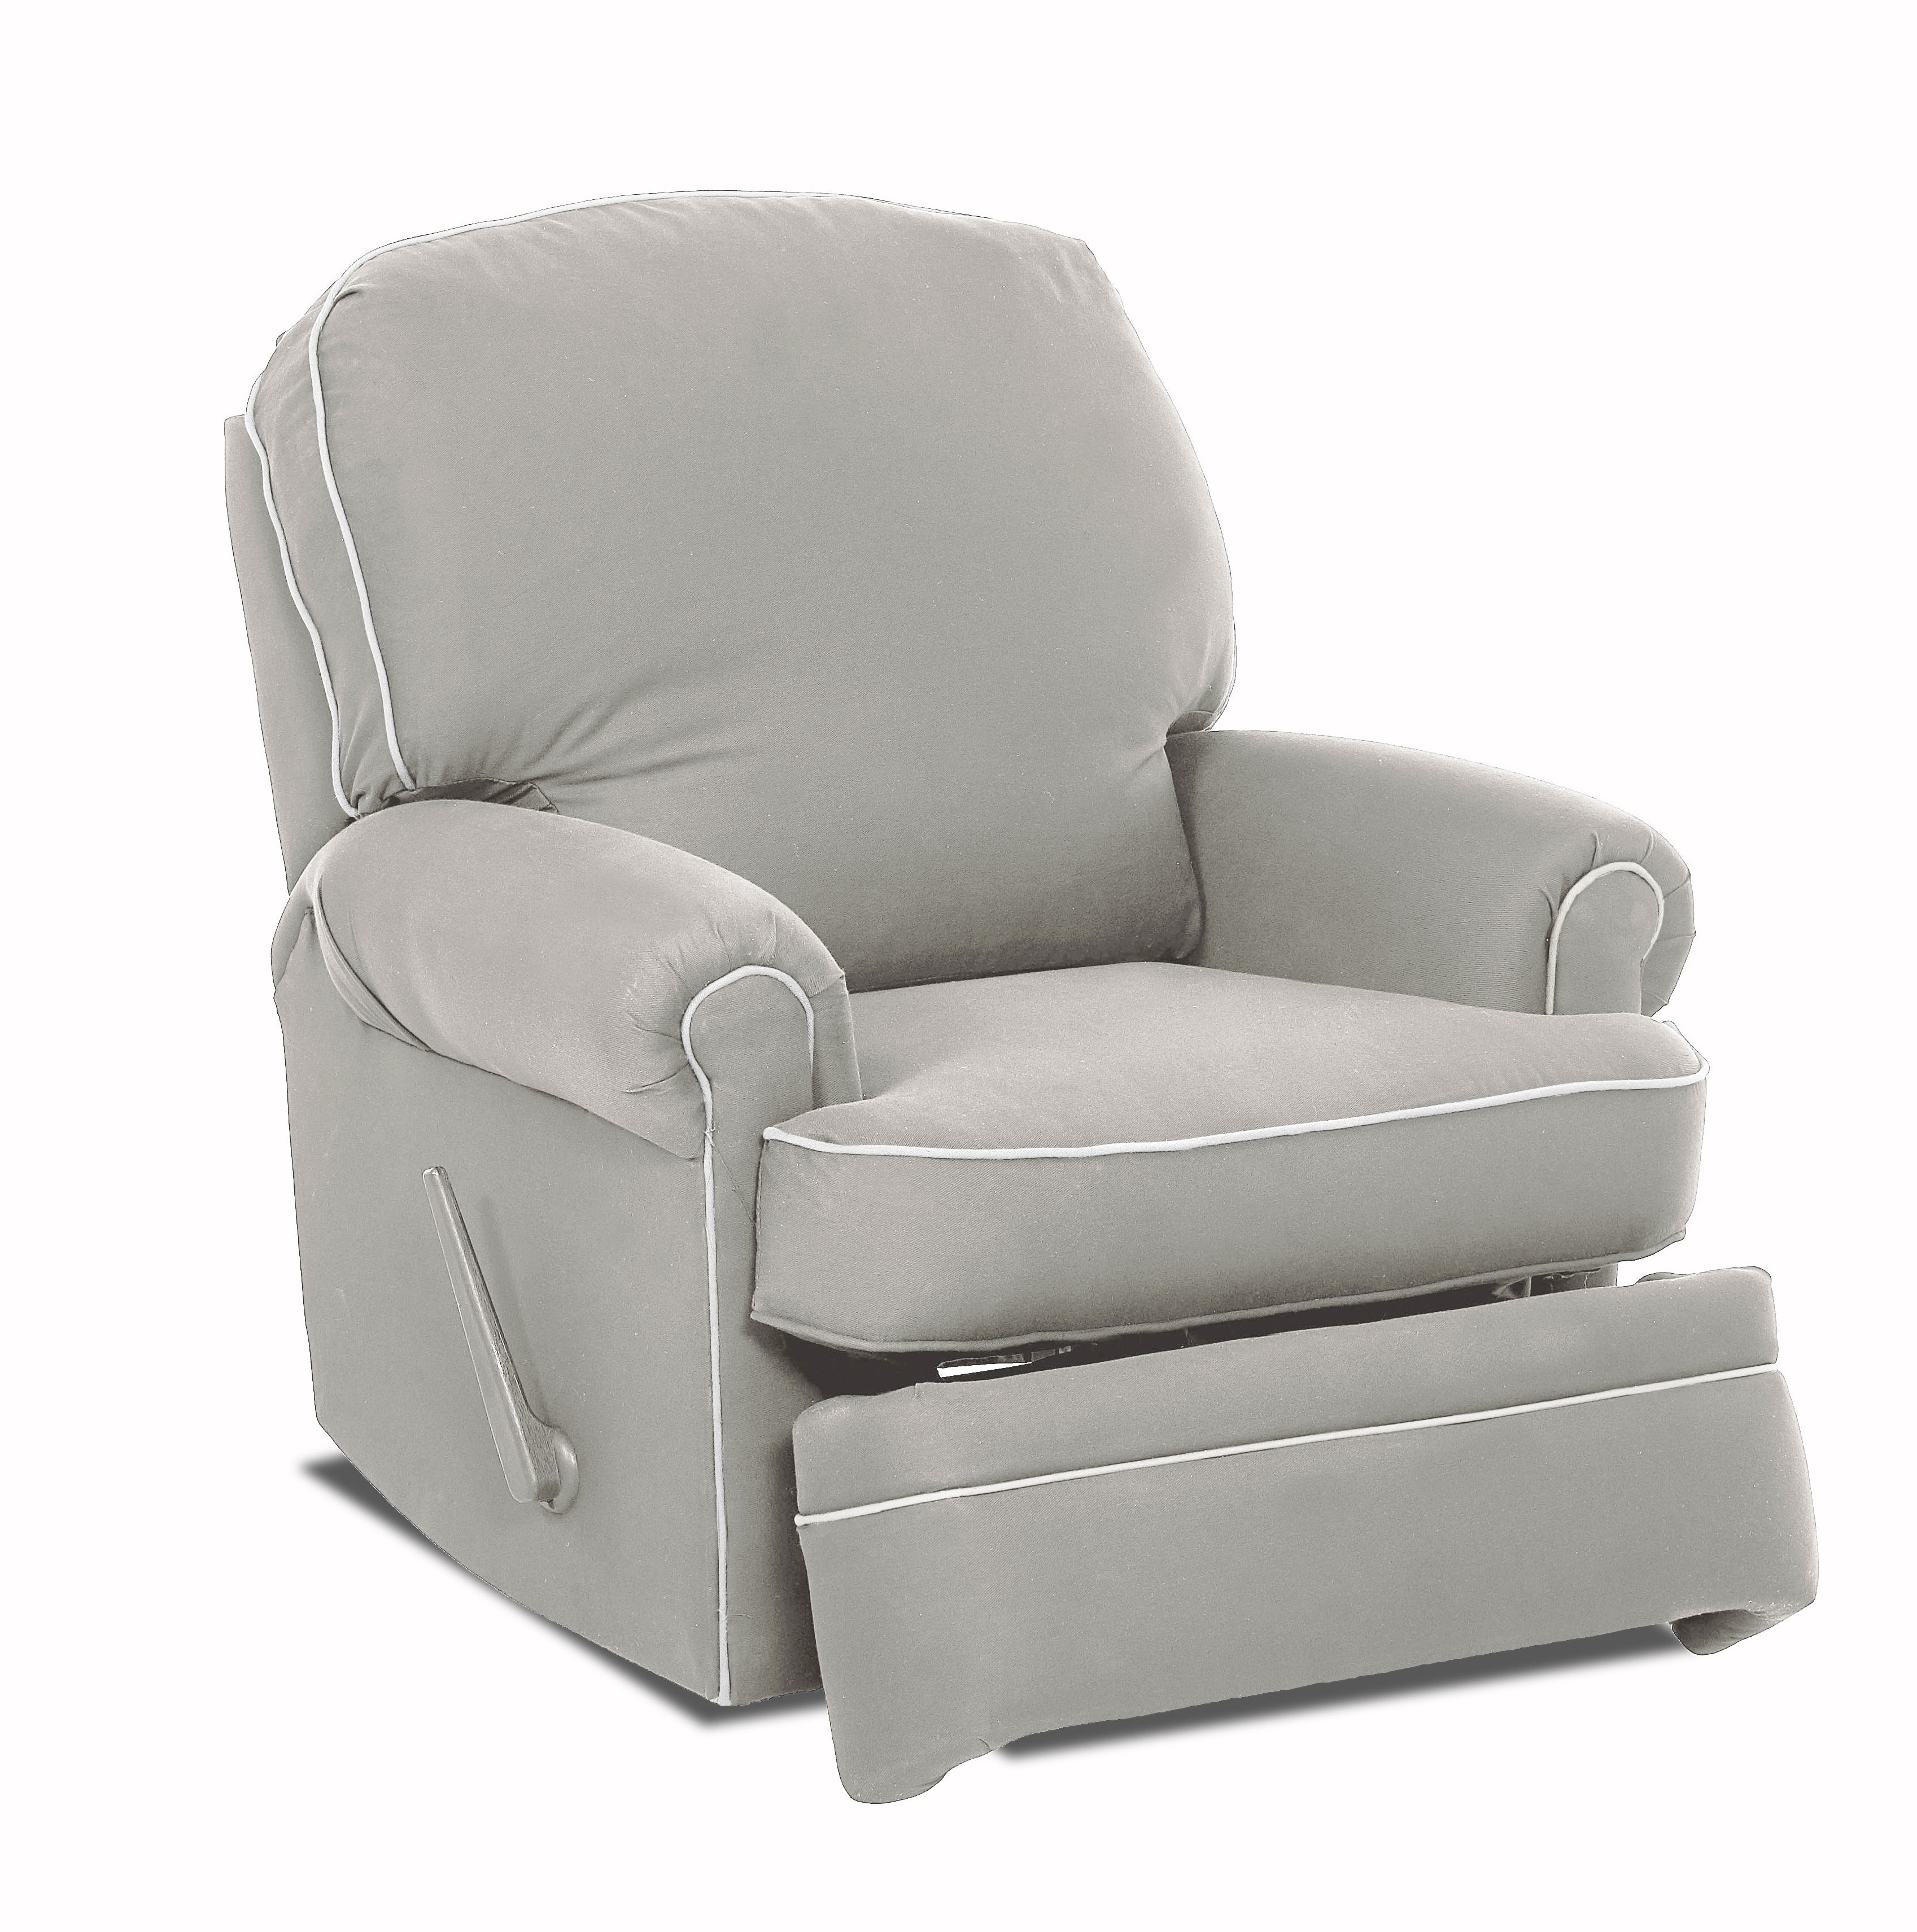 Wayfair Custom Upholstery™ Stanford Glider Swivel Recliner | Wayfair Throughout Katrina Blue Swivel Glider Chairs (View 2 of 25)